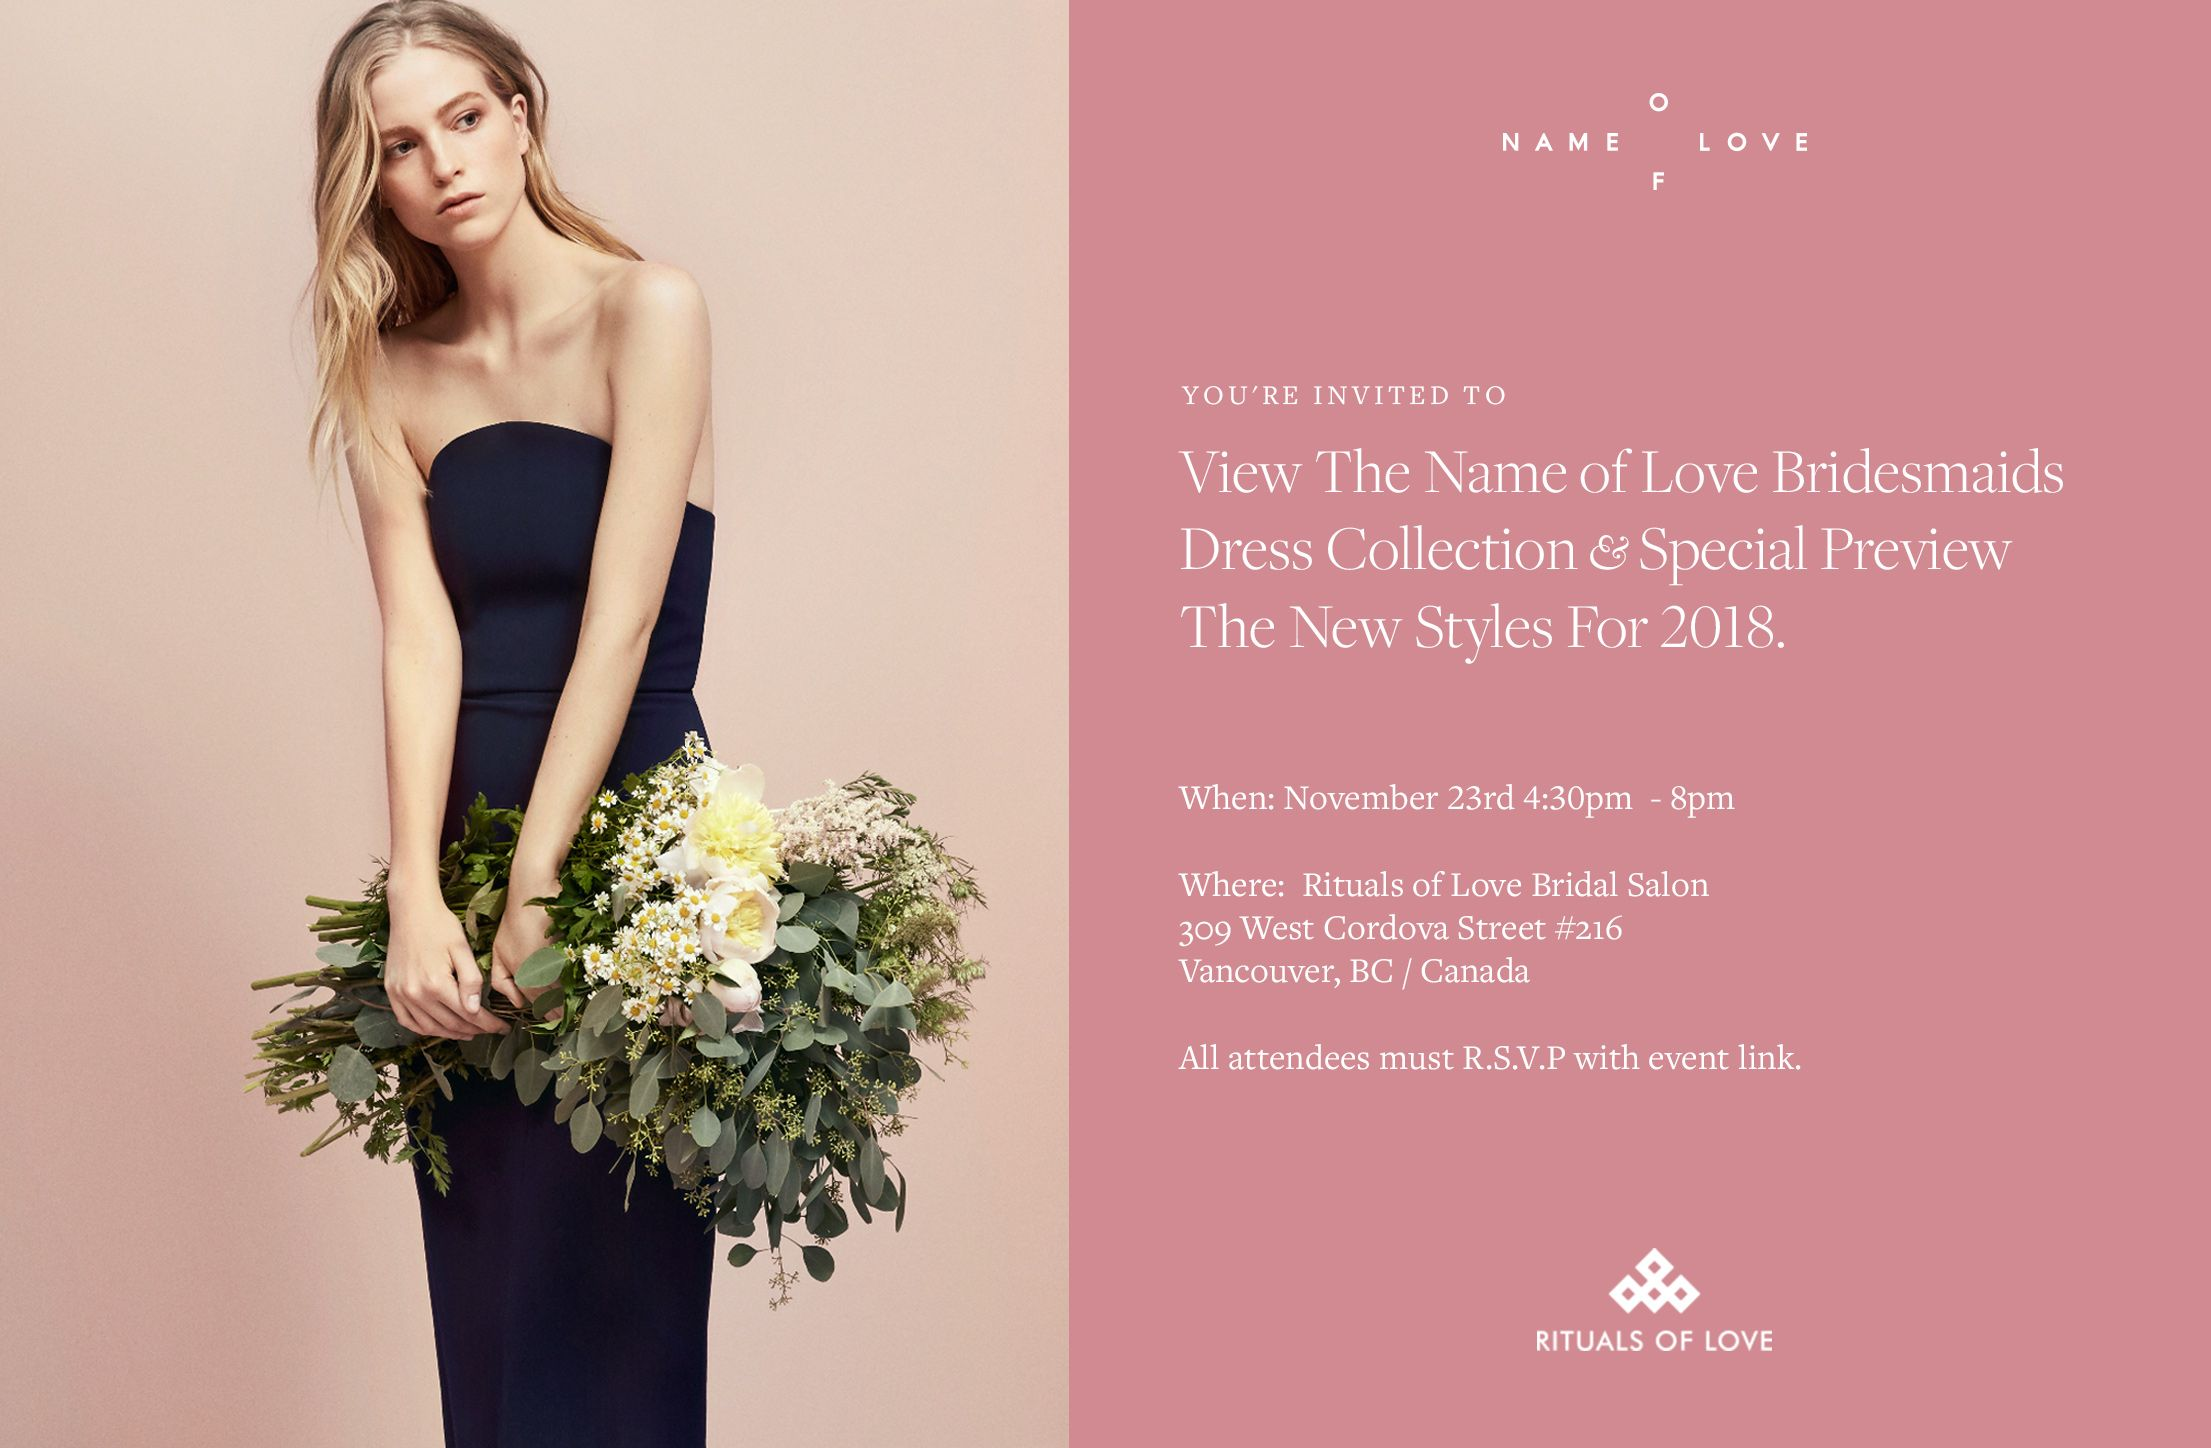 Name of love trunk show bridal pinterest